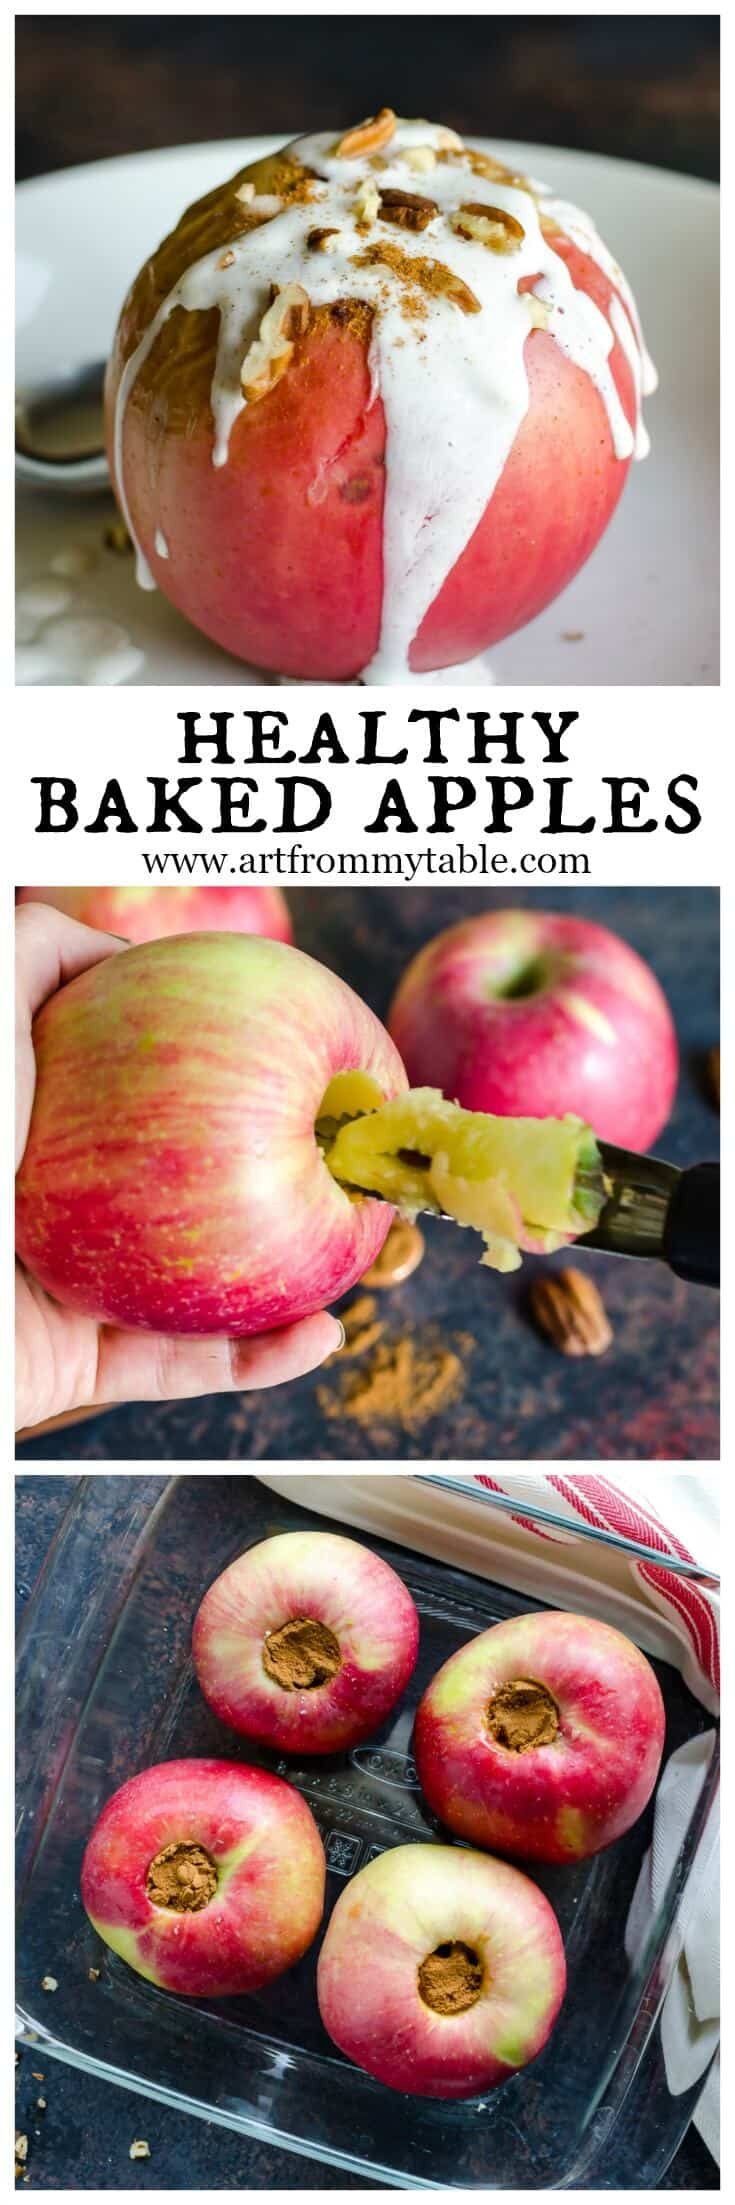 """Healthy"" never tasted to good! These Healthy Baked Apples are the perfect recipe for Fall. They are loaded with goodness and NO SUGAR! The topping gives you a little boost of protein in your dessert! #bakedapples #apples #fallrecipes #nosugar #healthydessert"